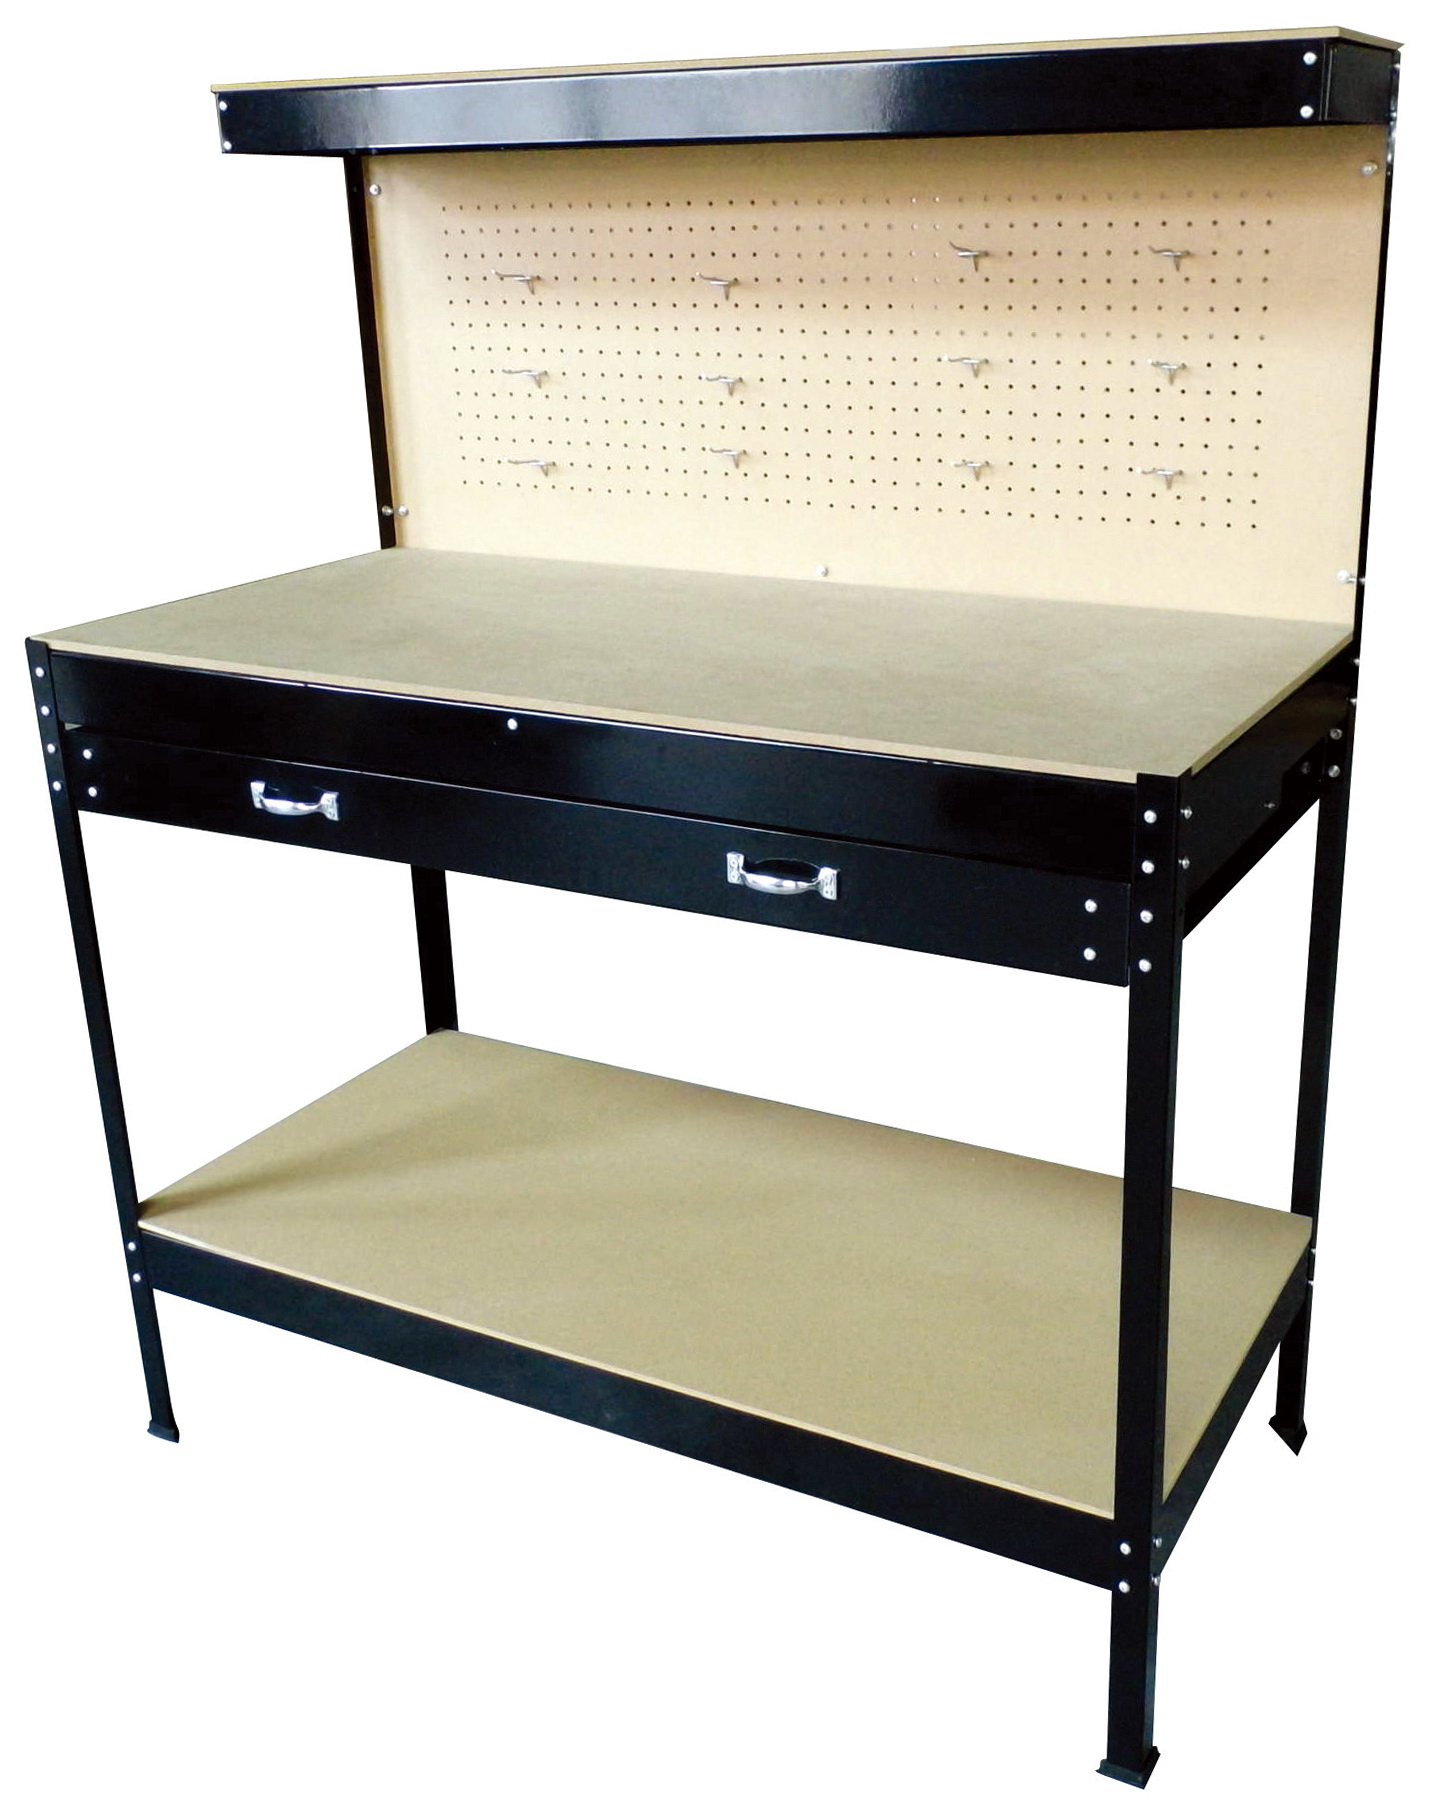 Husky Stainless Steel Work Bench Home Design Ideas